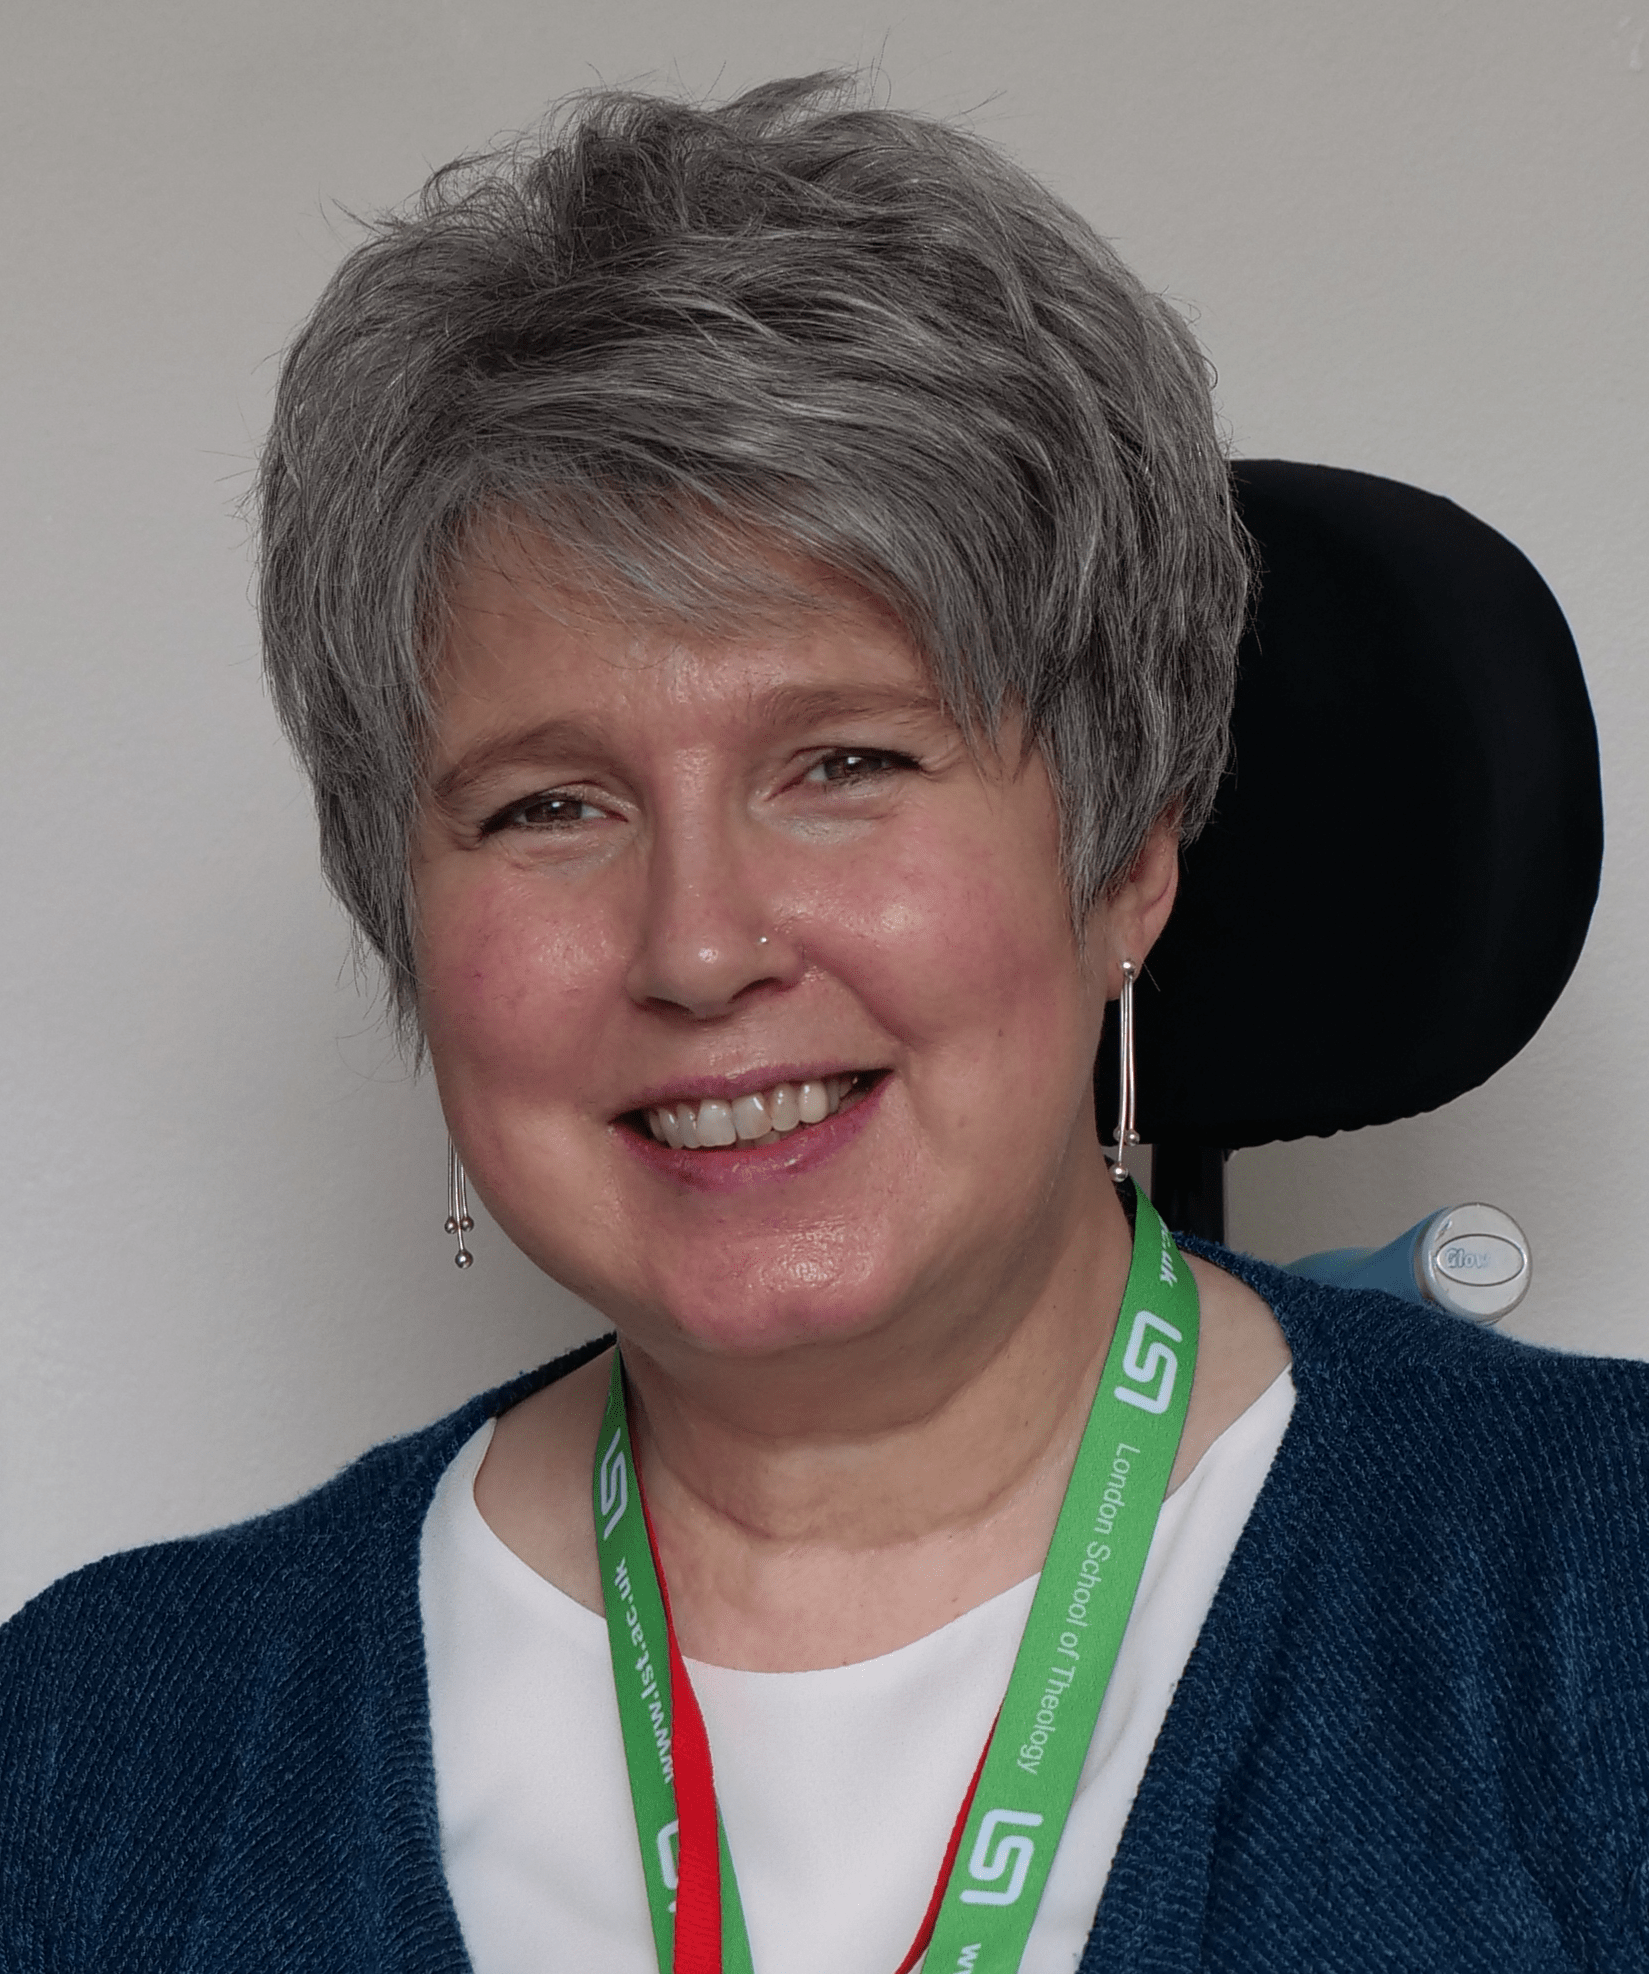 Photo of Kay. Head and shoulders shot, with wheelchair slightly visibles